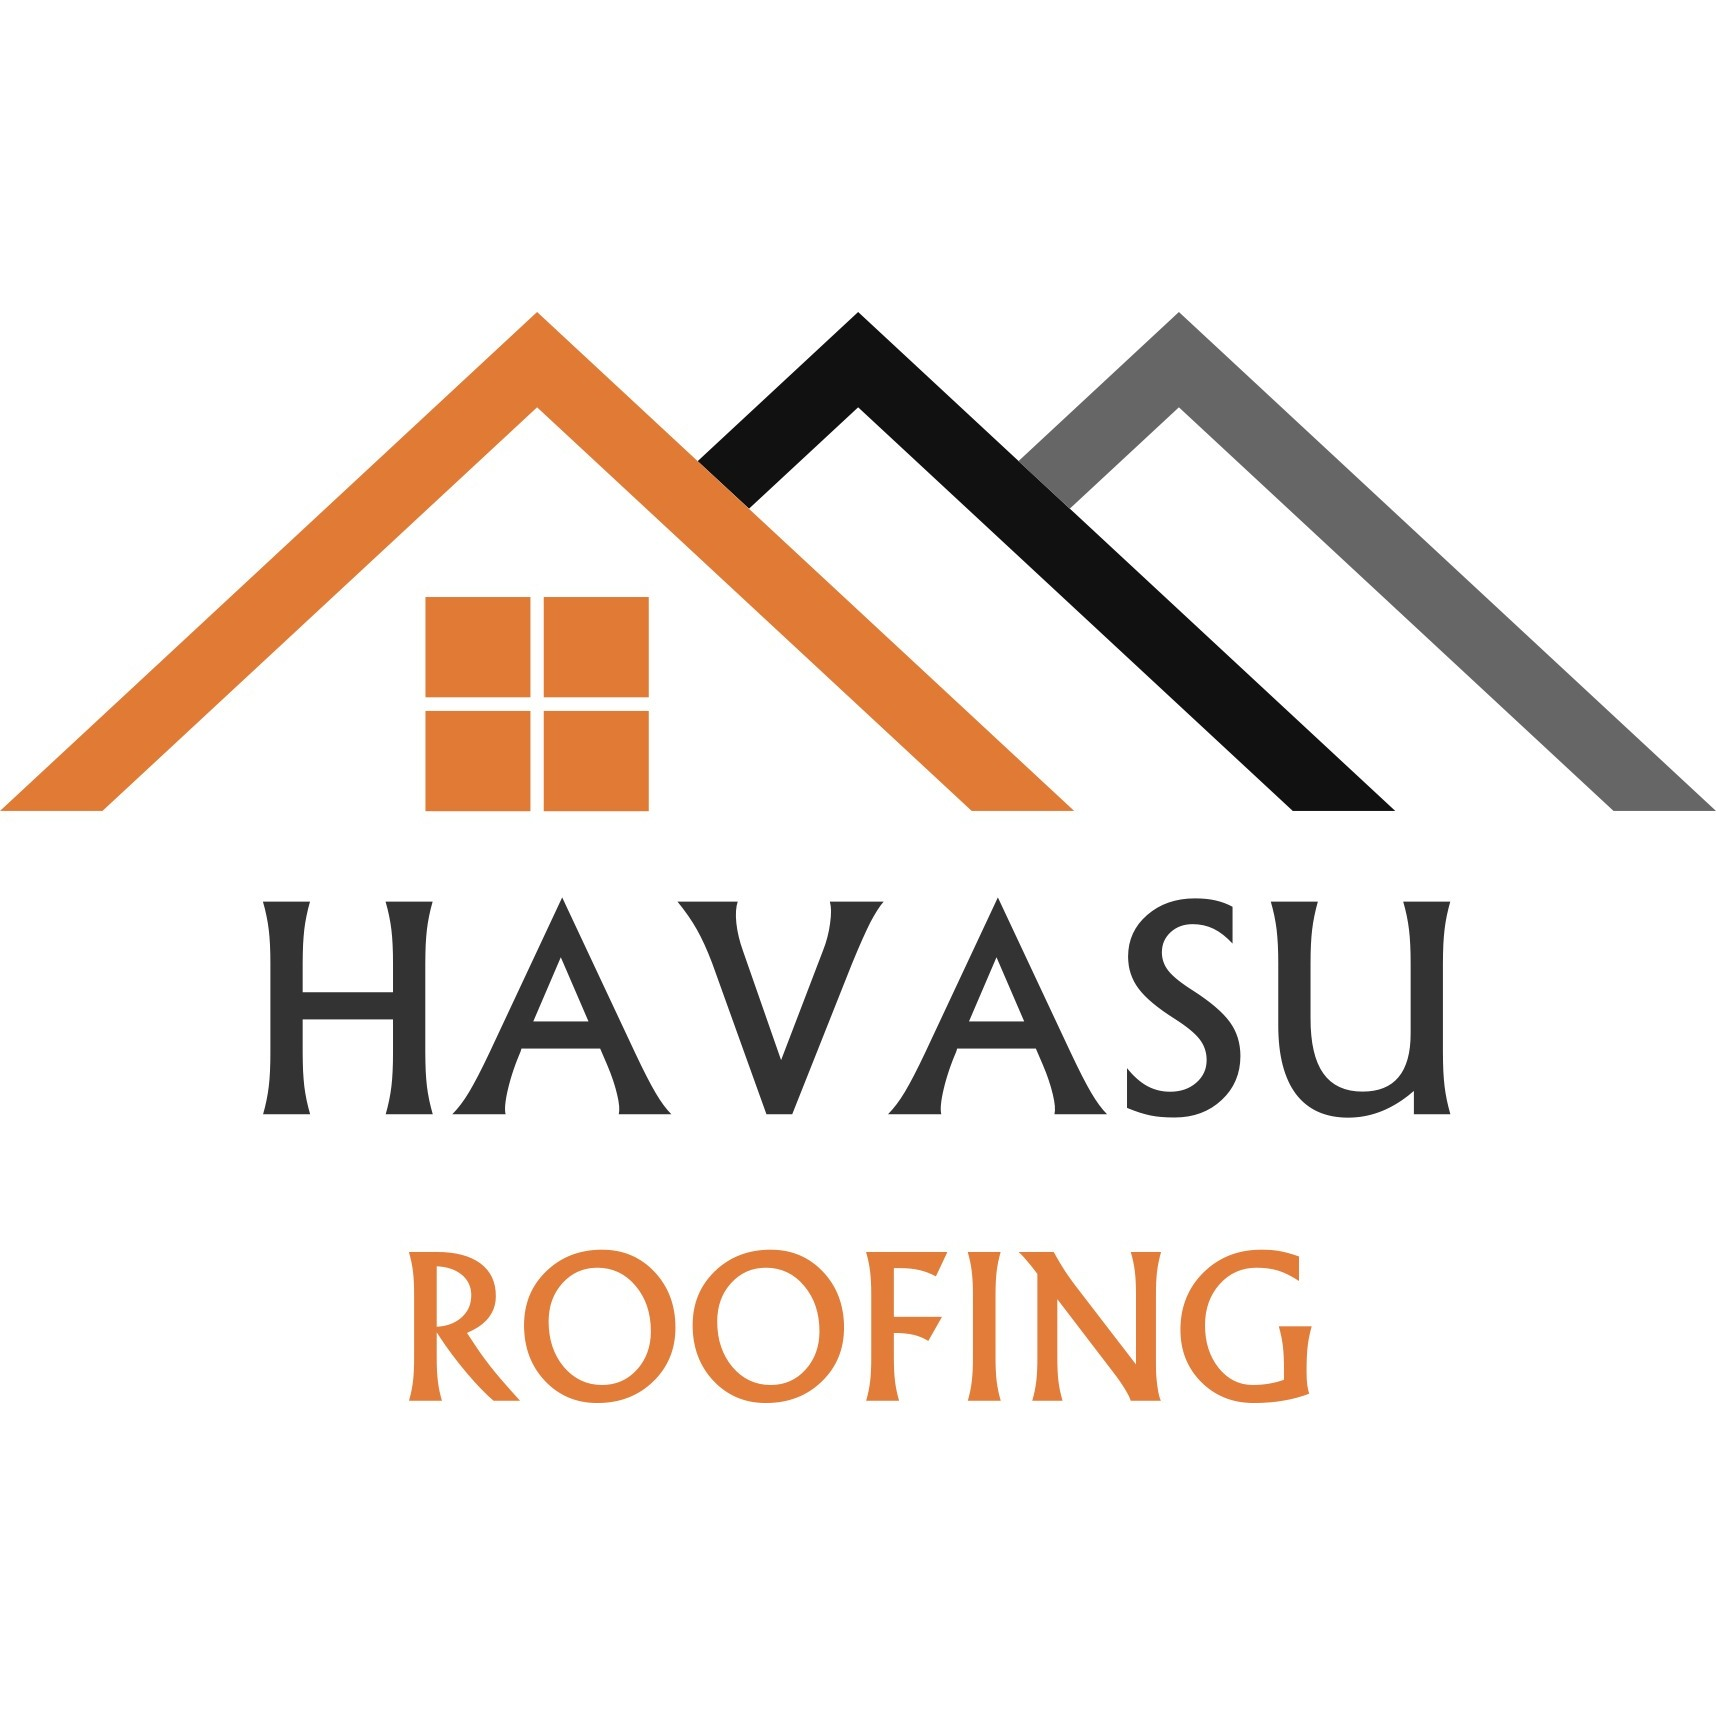 Havasu Roofing of Northern Arizona image 0